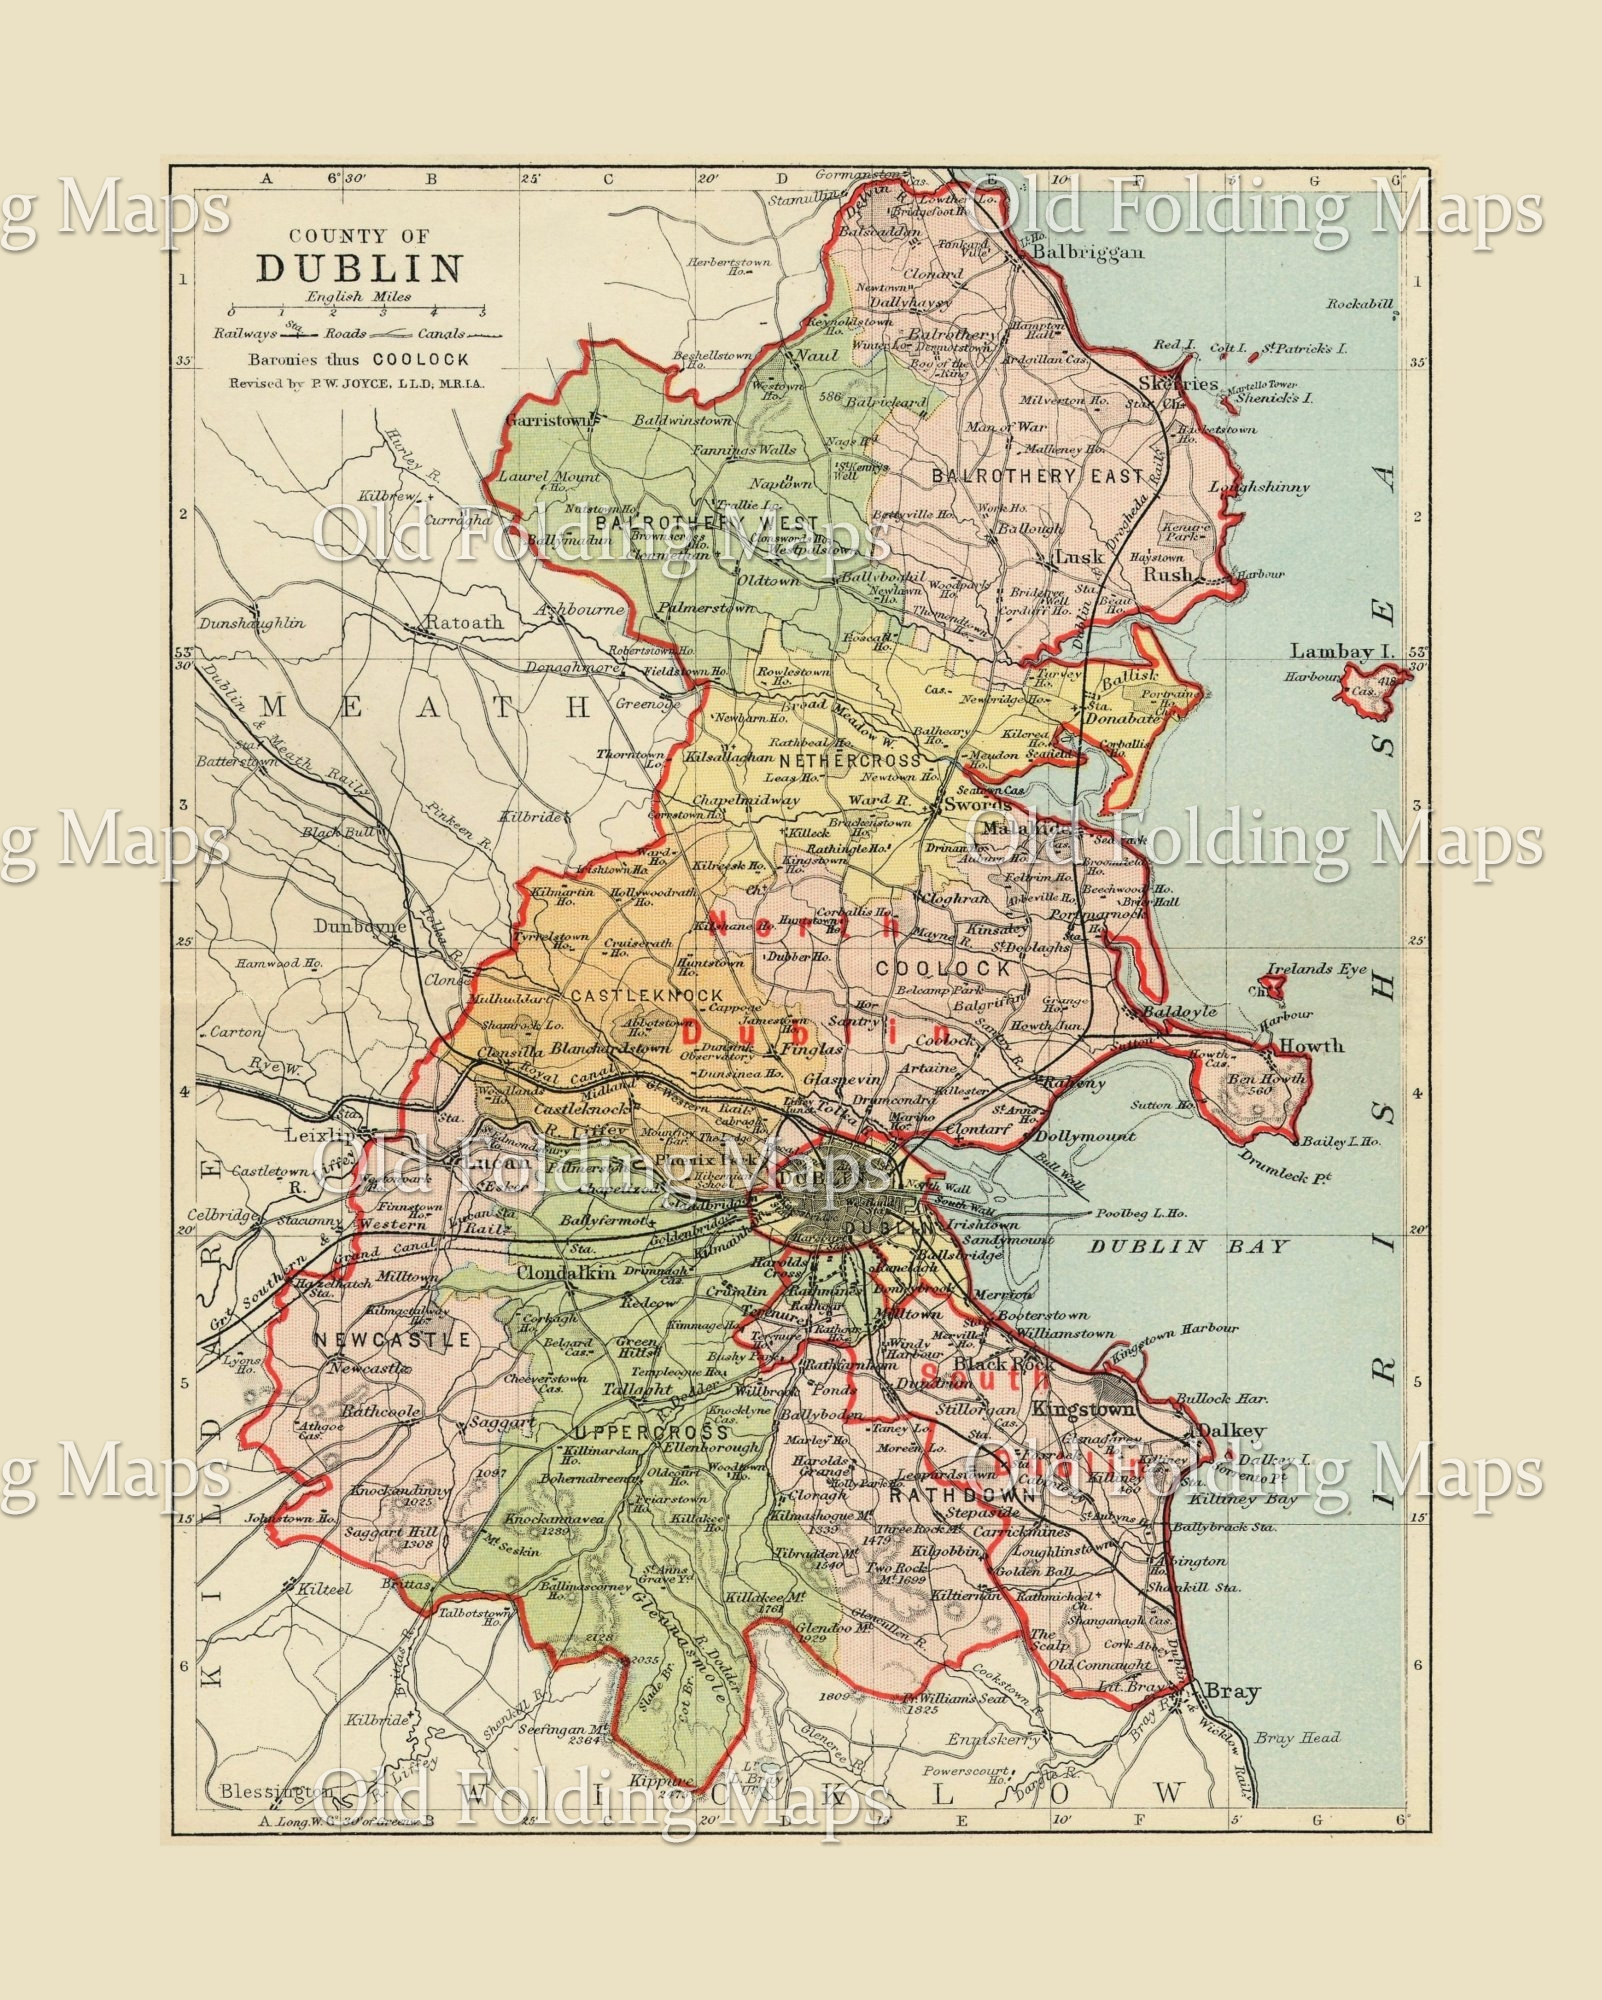 Antique County Map of Dublin, Ireland circa 1884